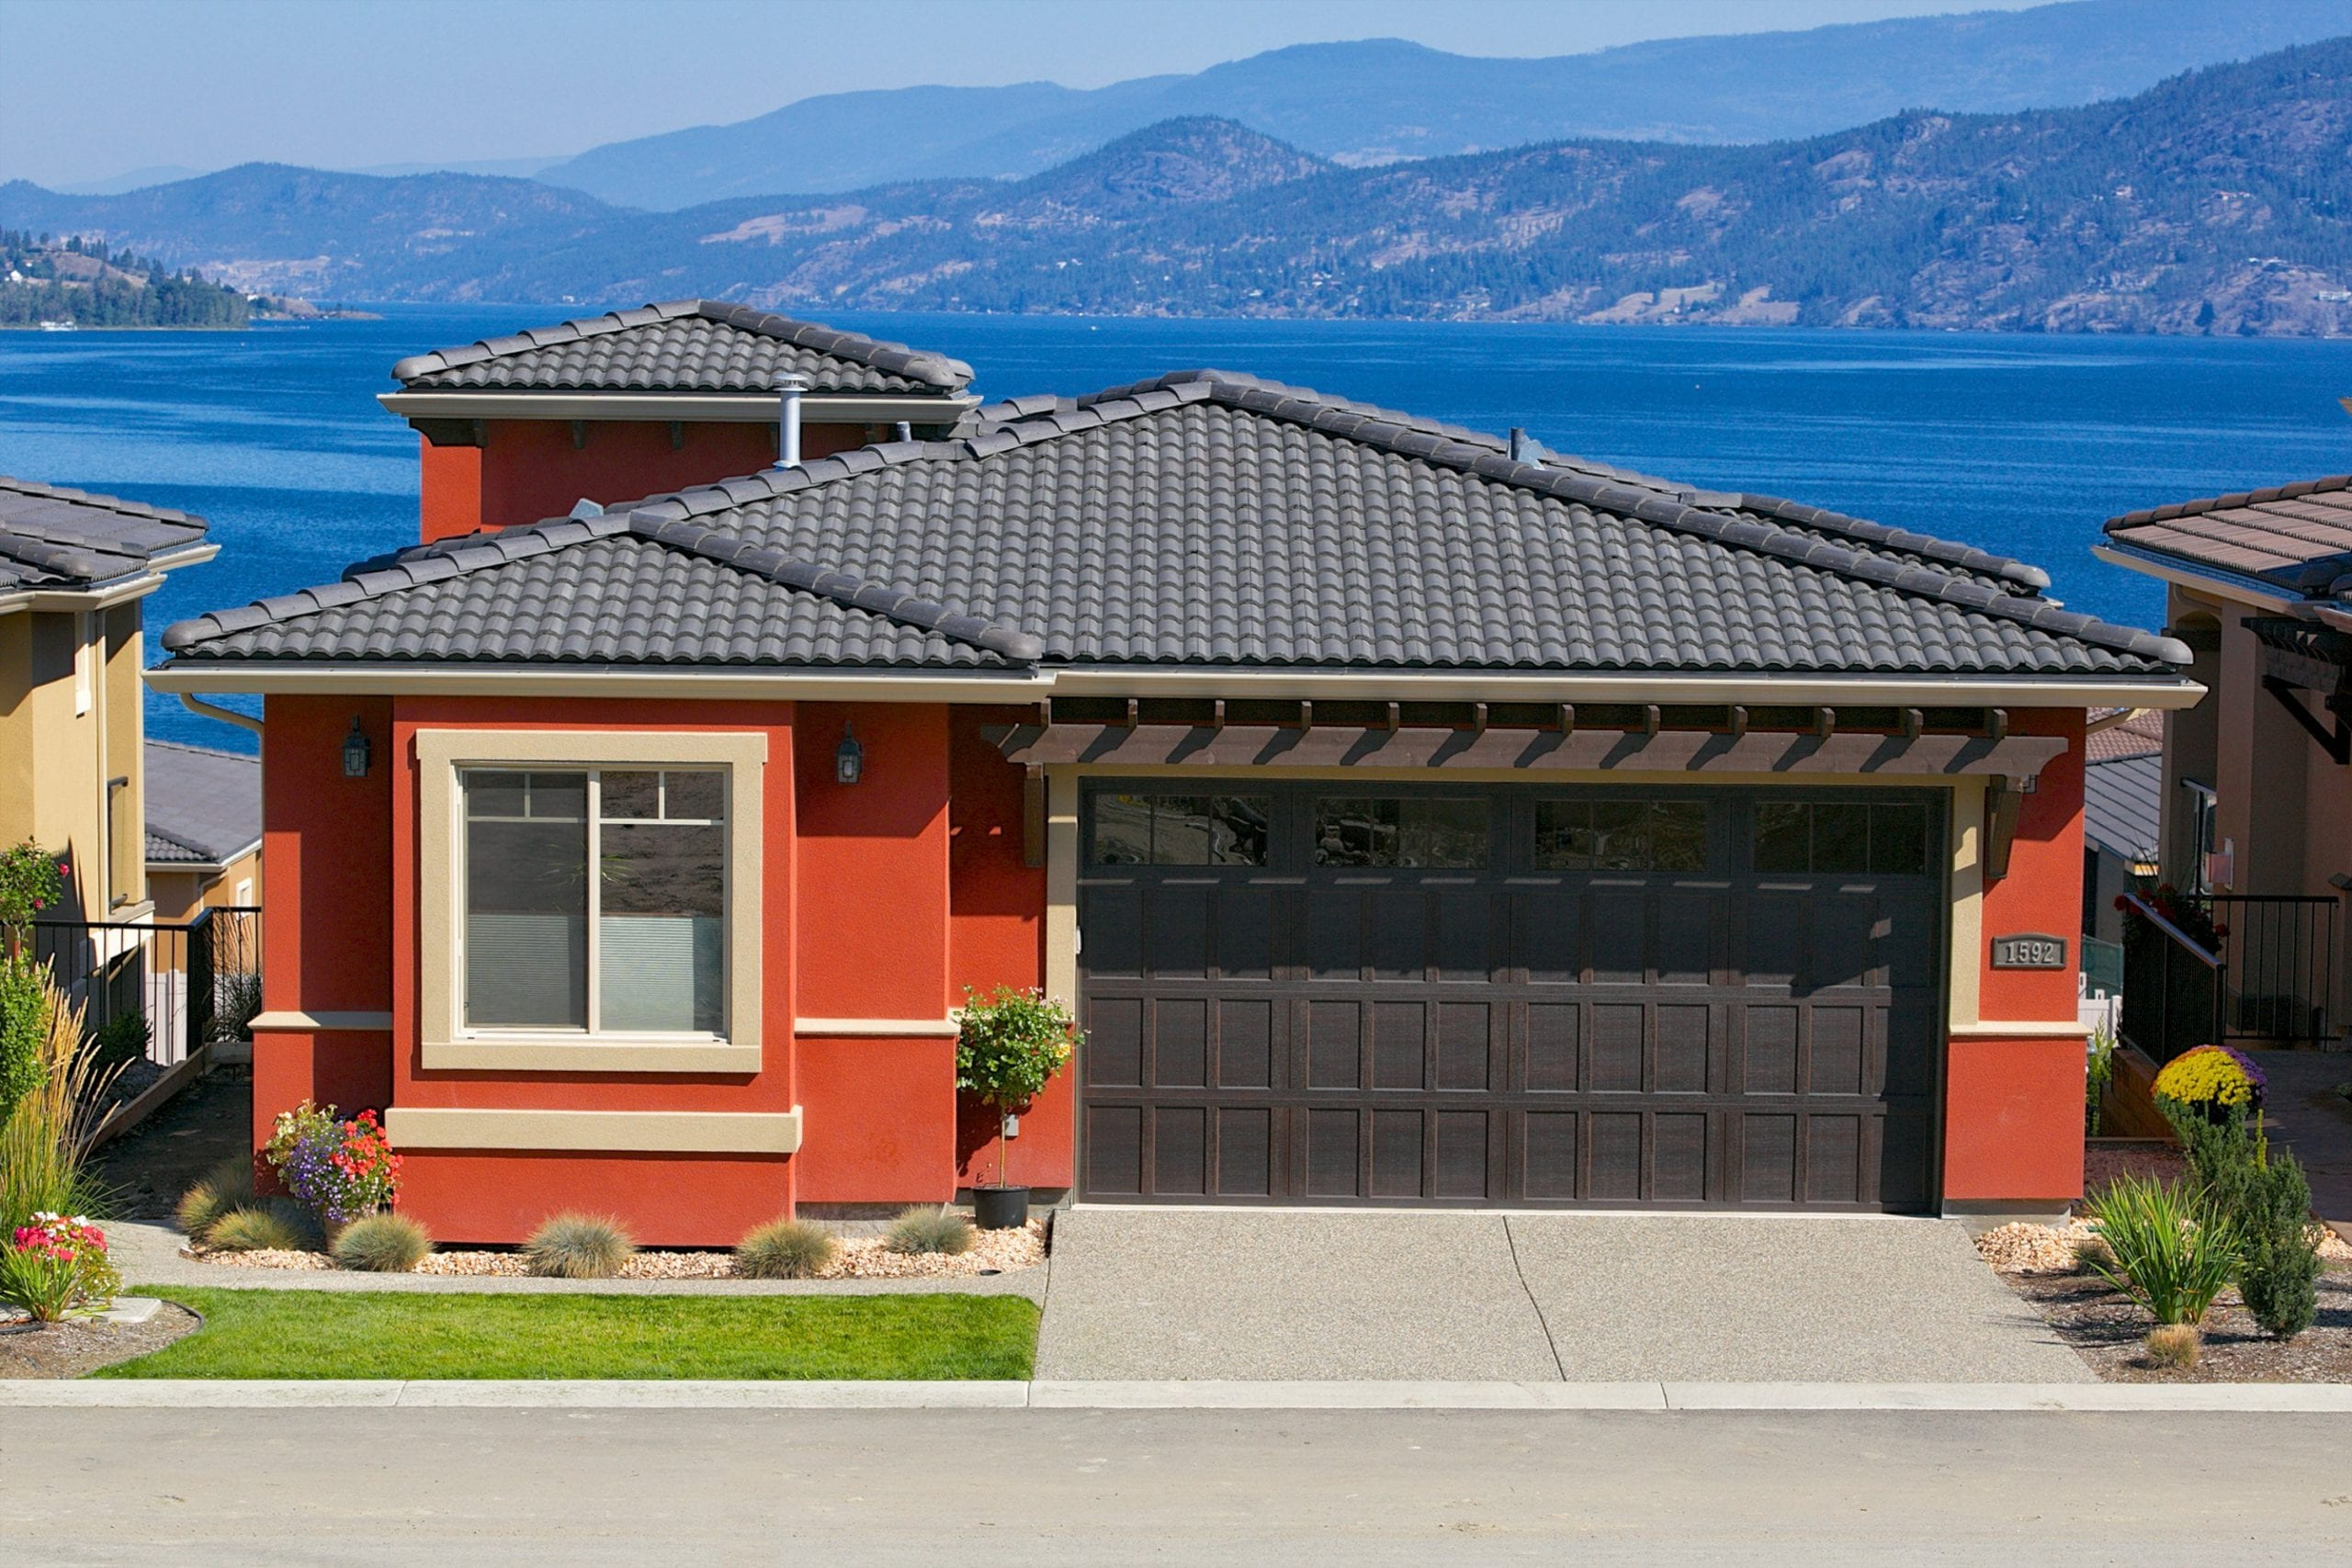 exterior shot of red chianti home with tan details in west harbour overlooking the lake in the background